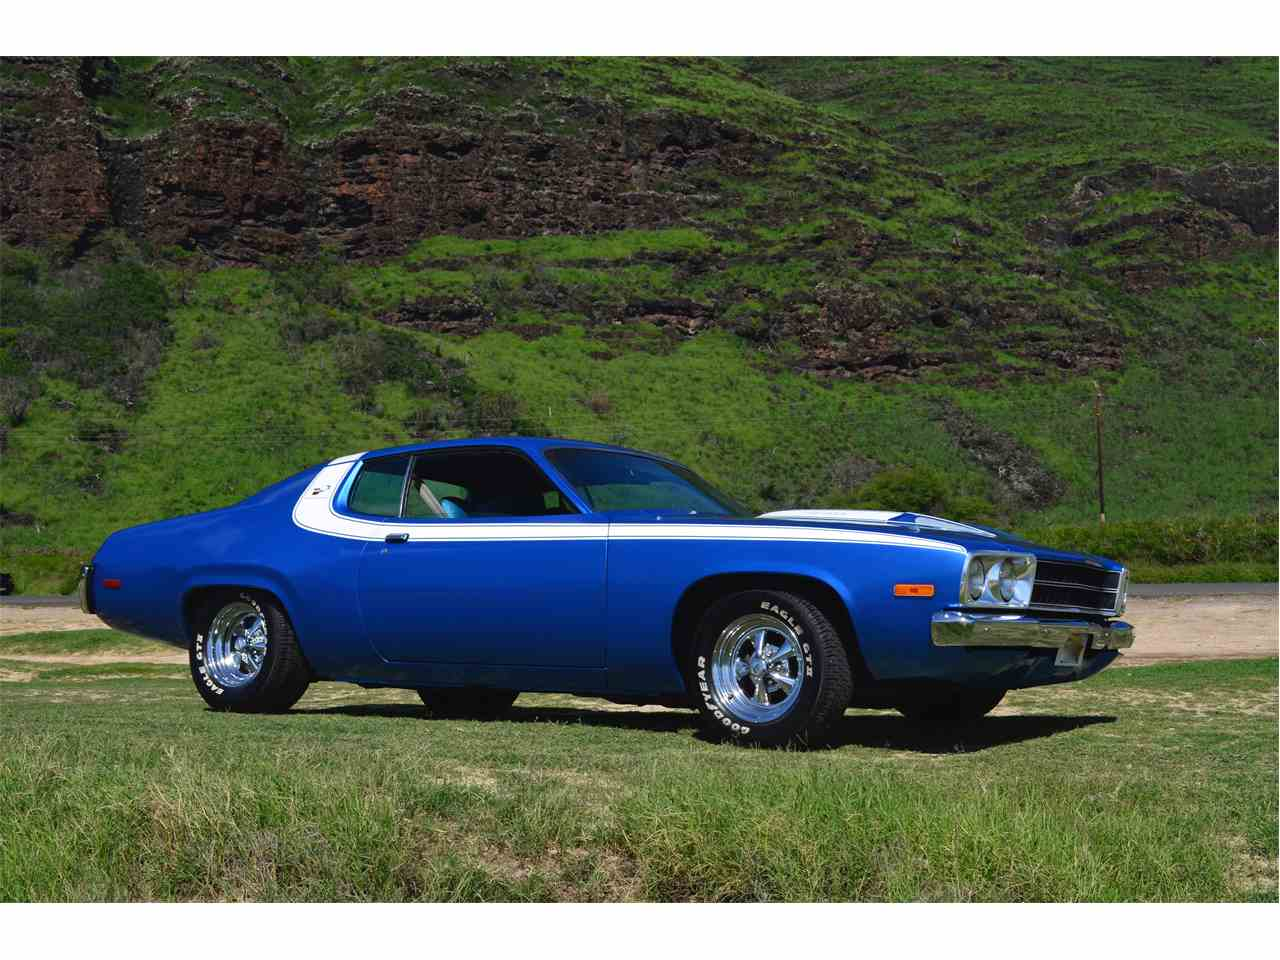 Texas Car Inspection >> 1973 Plymouth Road Runner for Sale | ClassicCars.com | CC-1024918